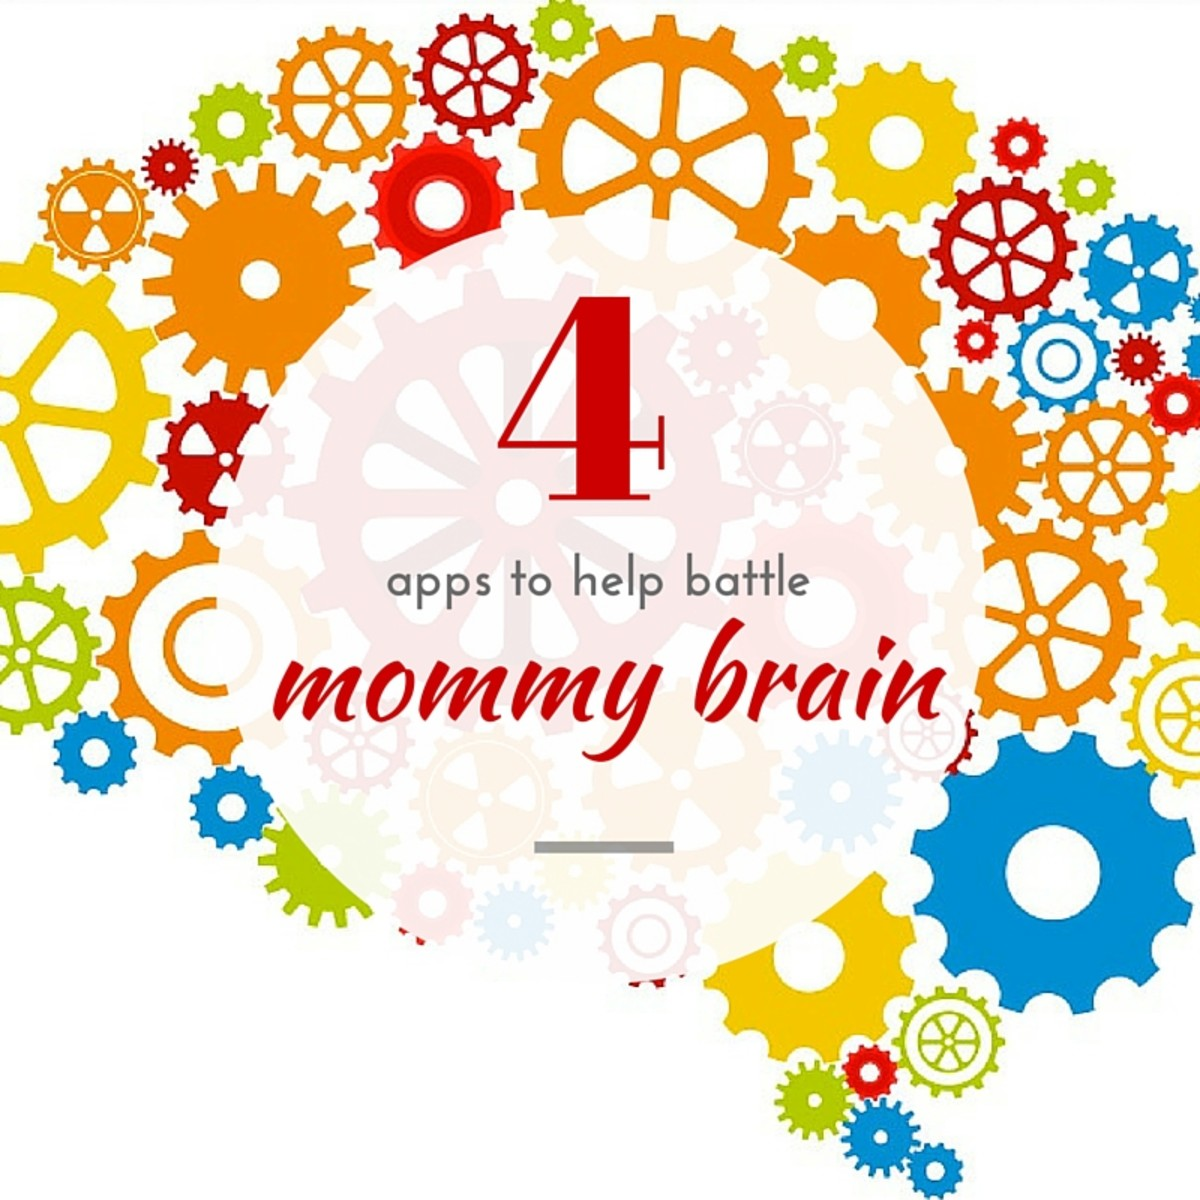 4 Apps to Battle Mommy Brain